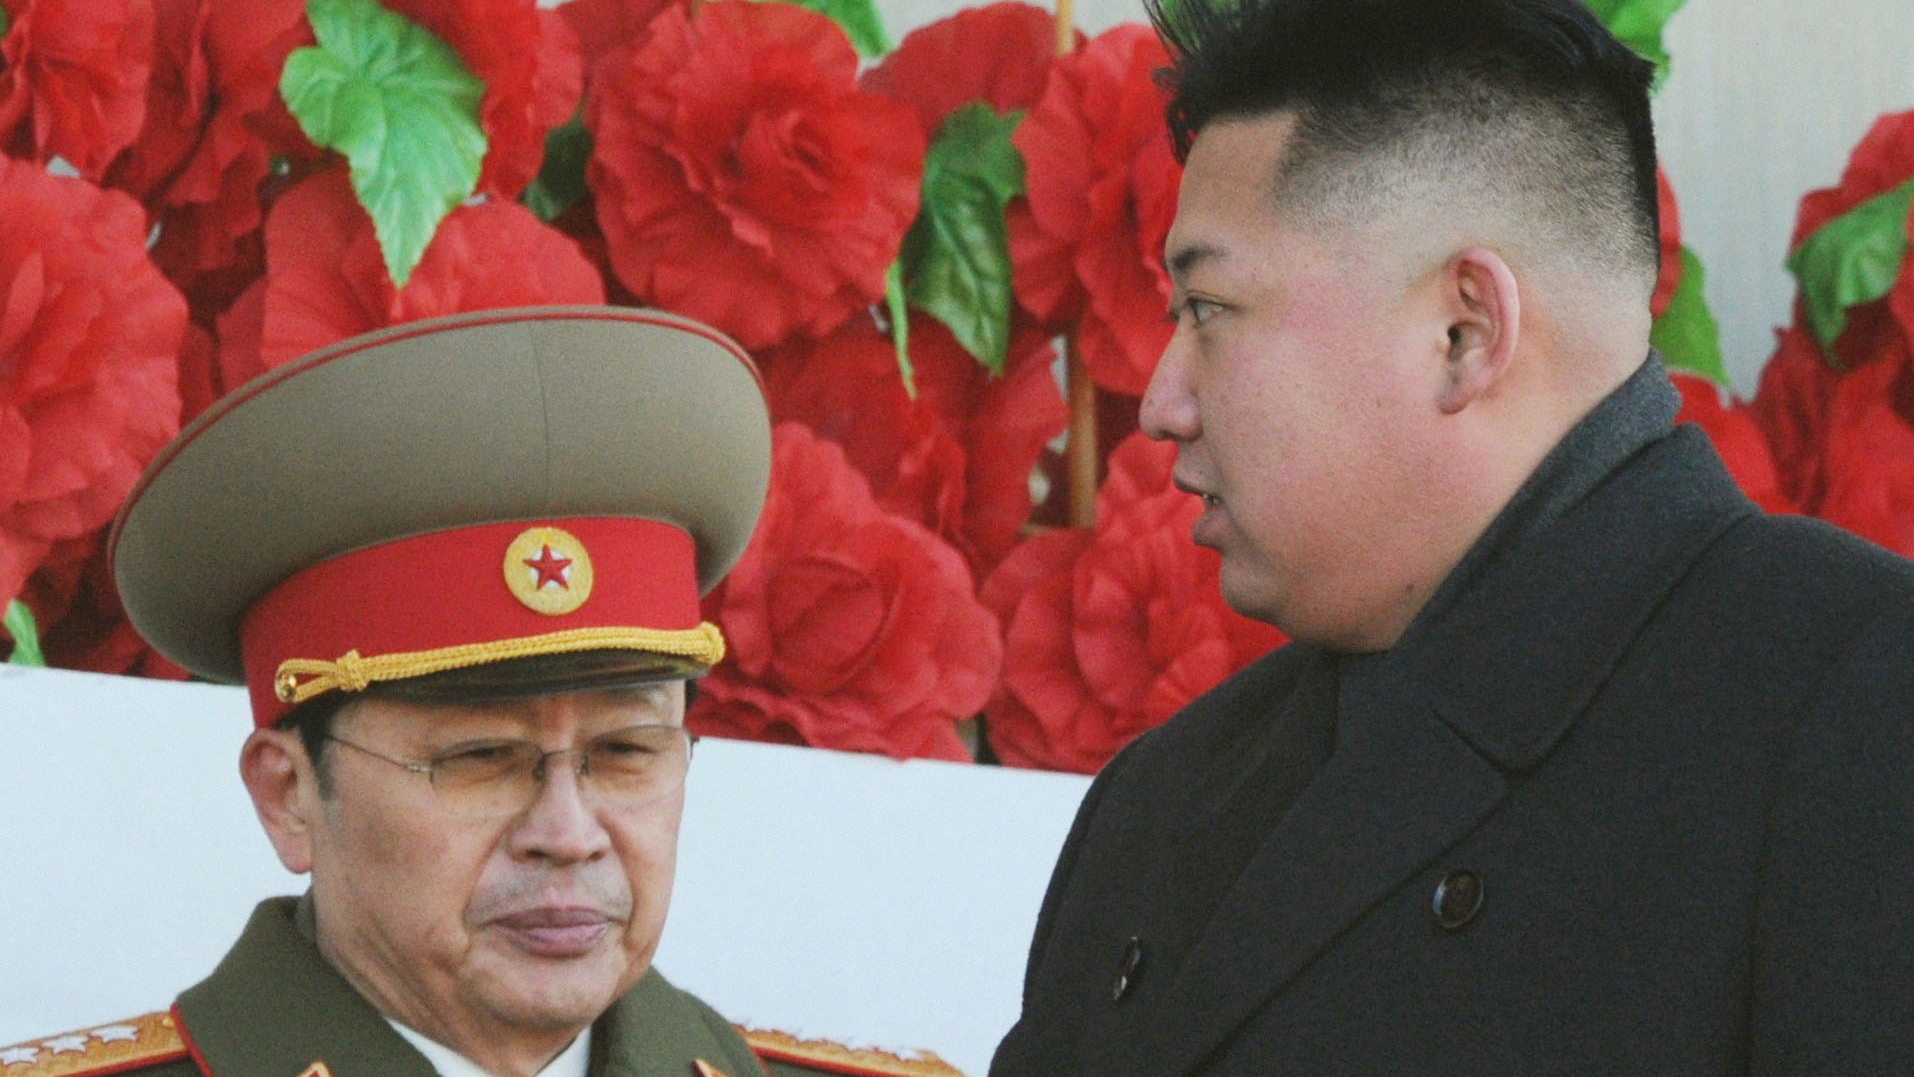 Jang Song-thaek in army uniform standing with his nephew and North Korea's top leader, Kim Jong-un, at a military parade in Pyongyang (February of 2012).